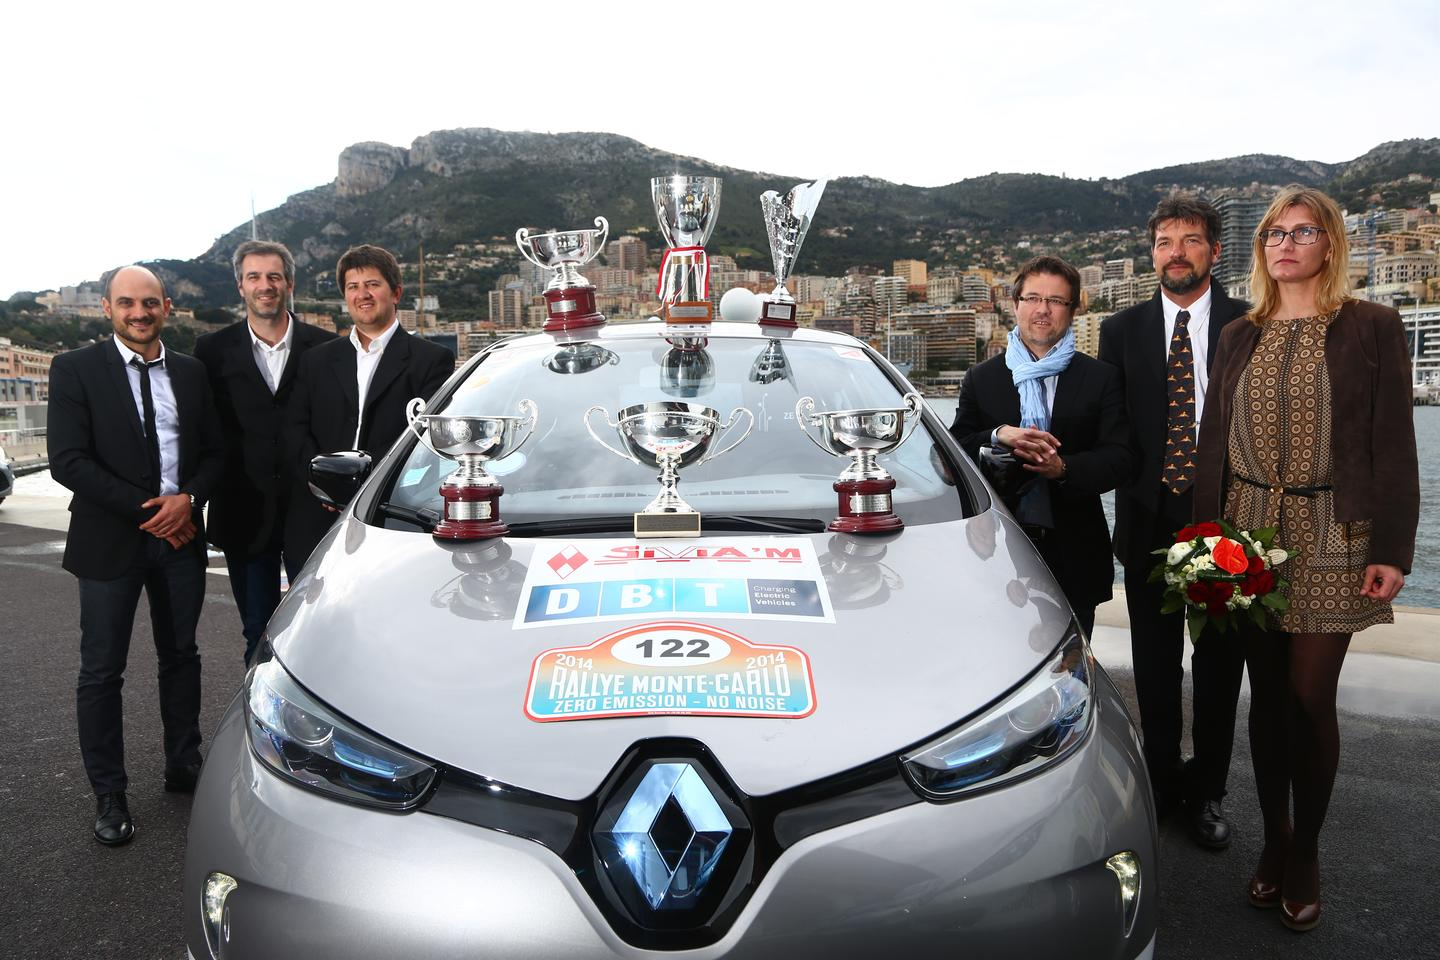 Renault's ZOE not only took first place overall but also captured the podium for the Regularity Prize, the Energy Consumption Prize, an Autotest (auto slalom) on Monaco's harbor, and finally a Team Challenge